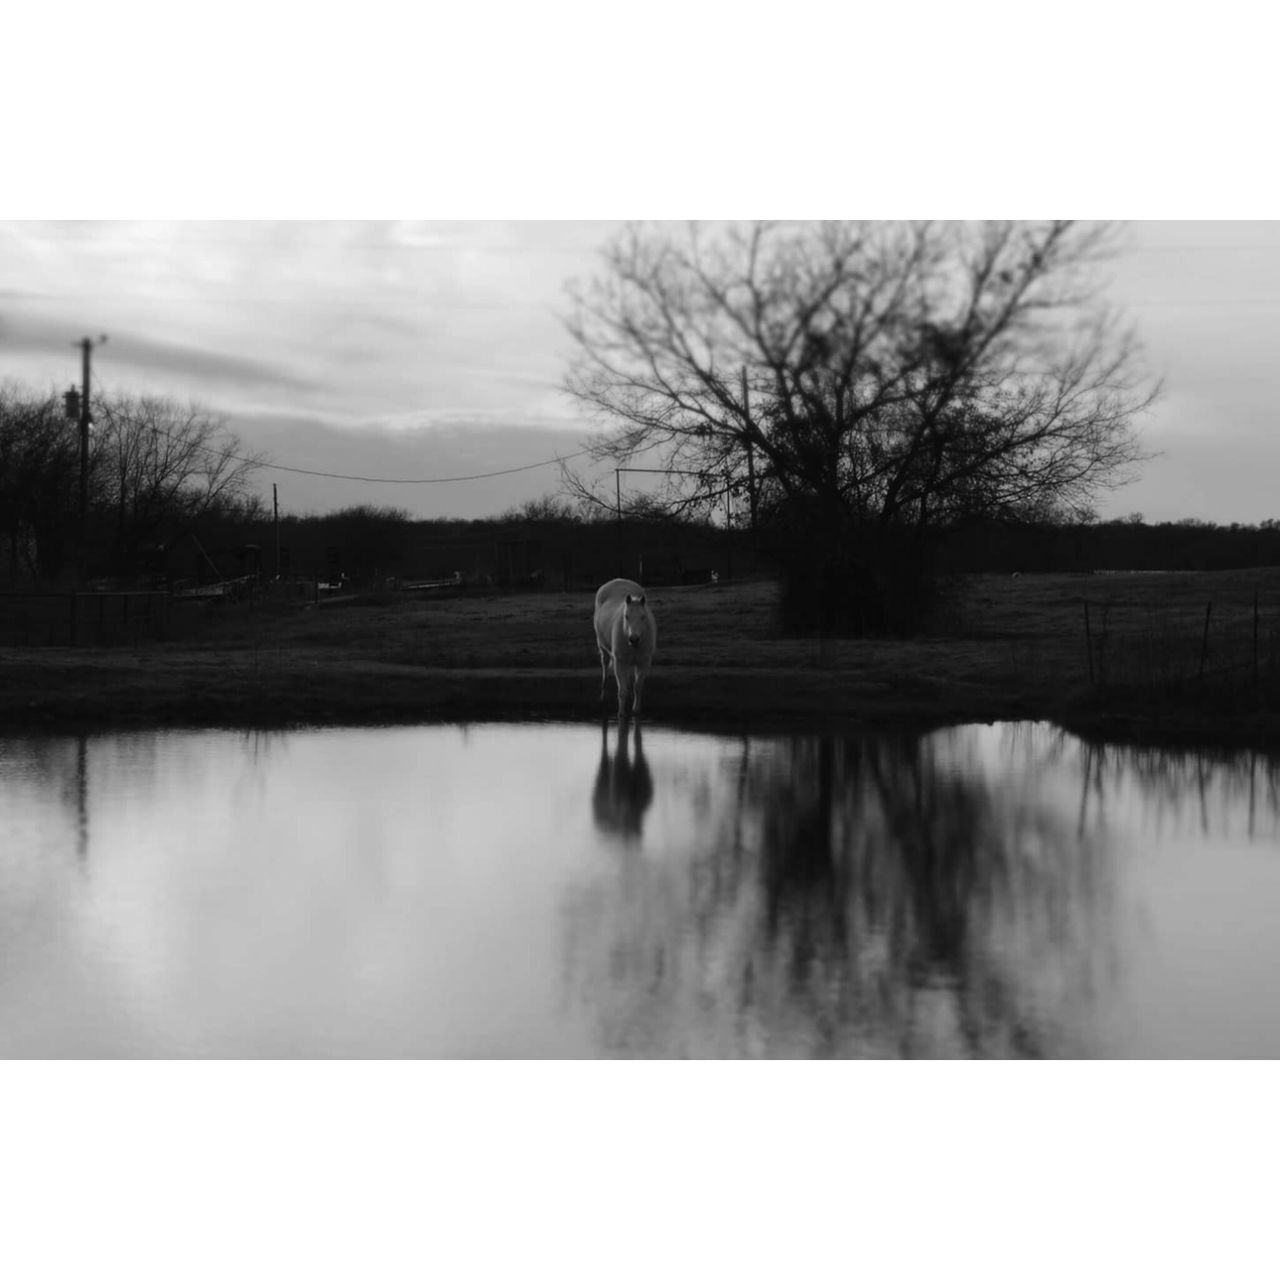 reflection, water, one person, rear view, walking, real people, full length, day, lake, nature, outdoors, one animal, sky, bare tree, women, standing, beauty in nature, tree, mammal, people